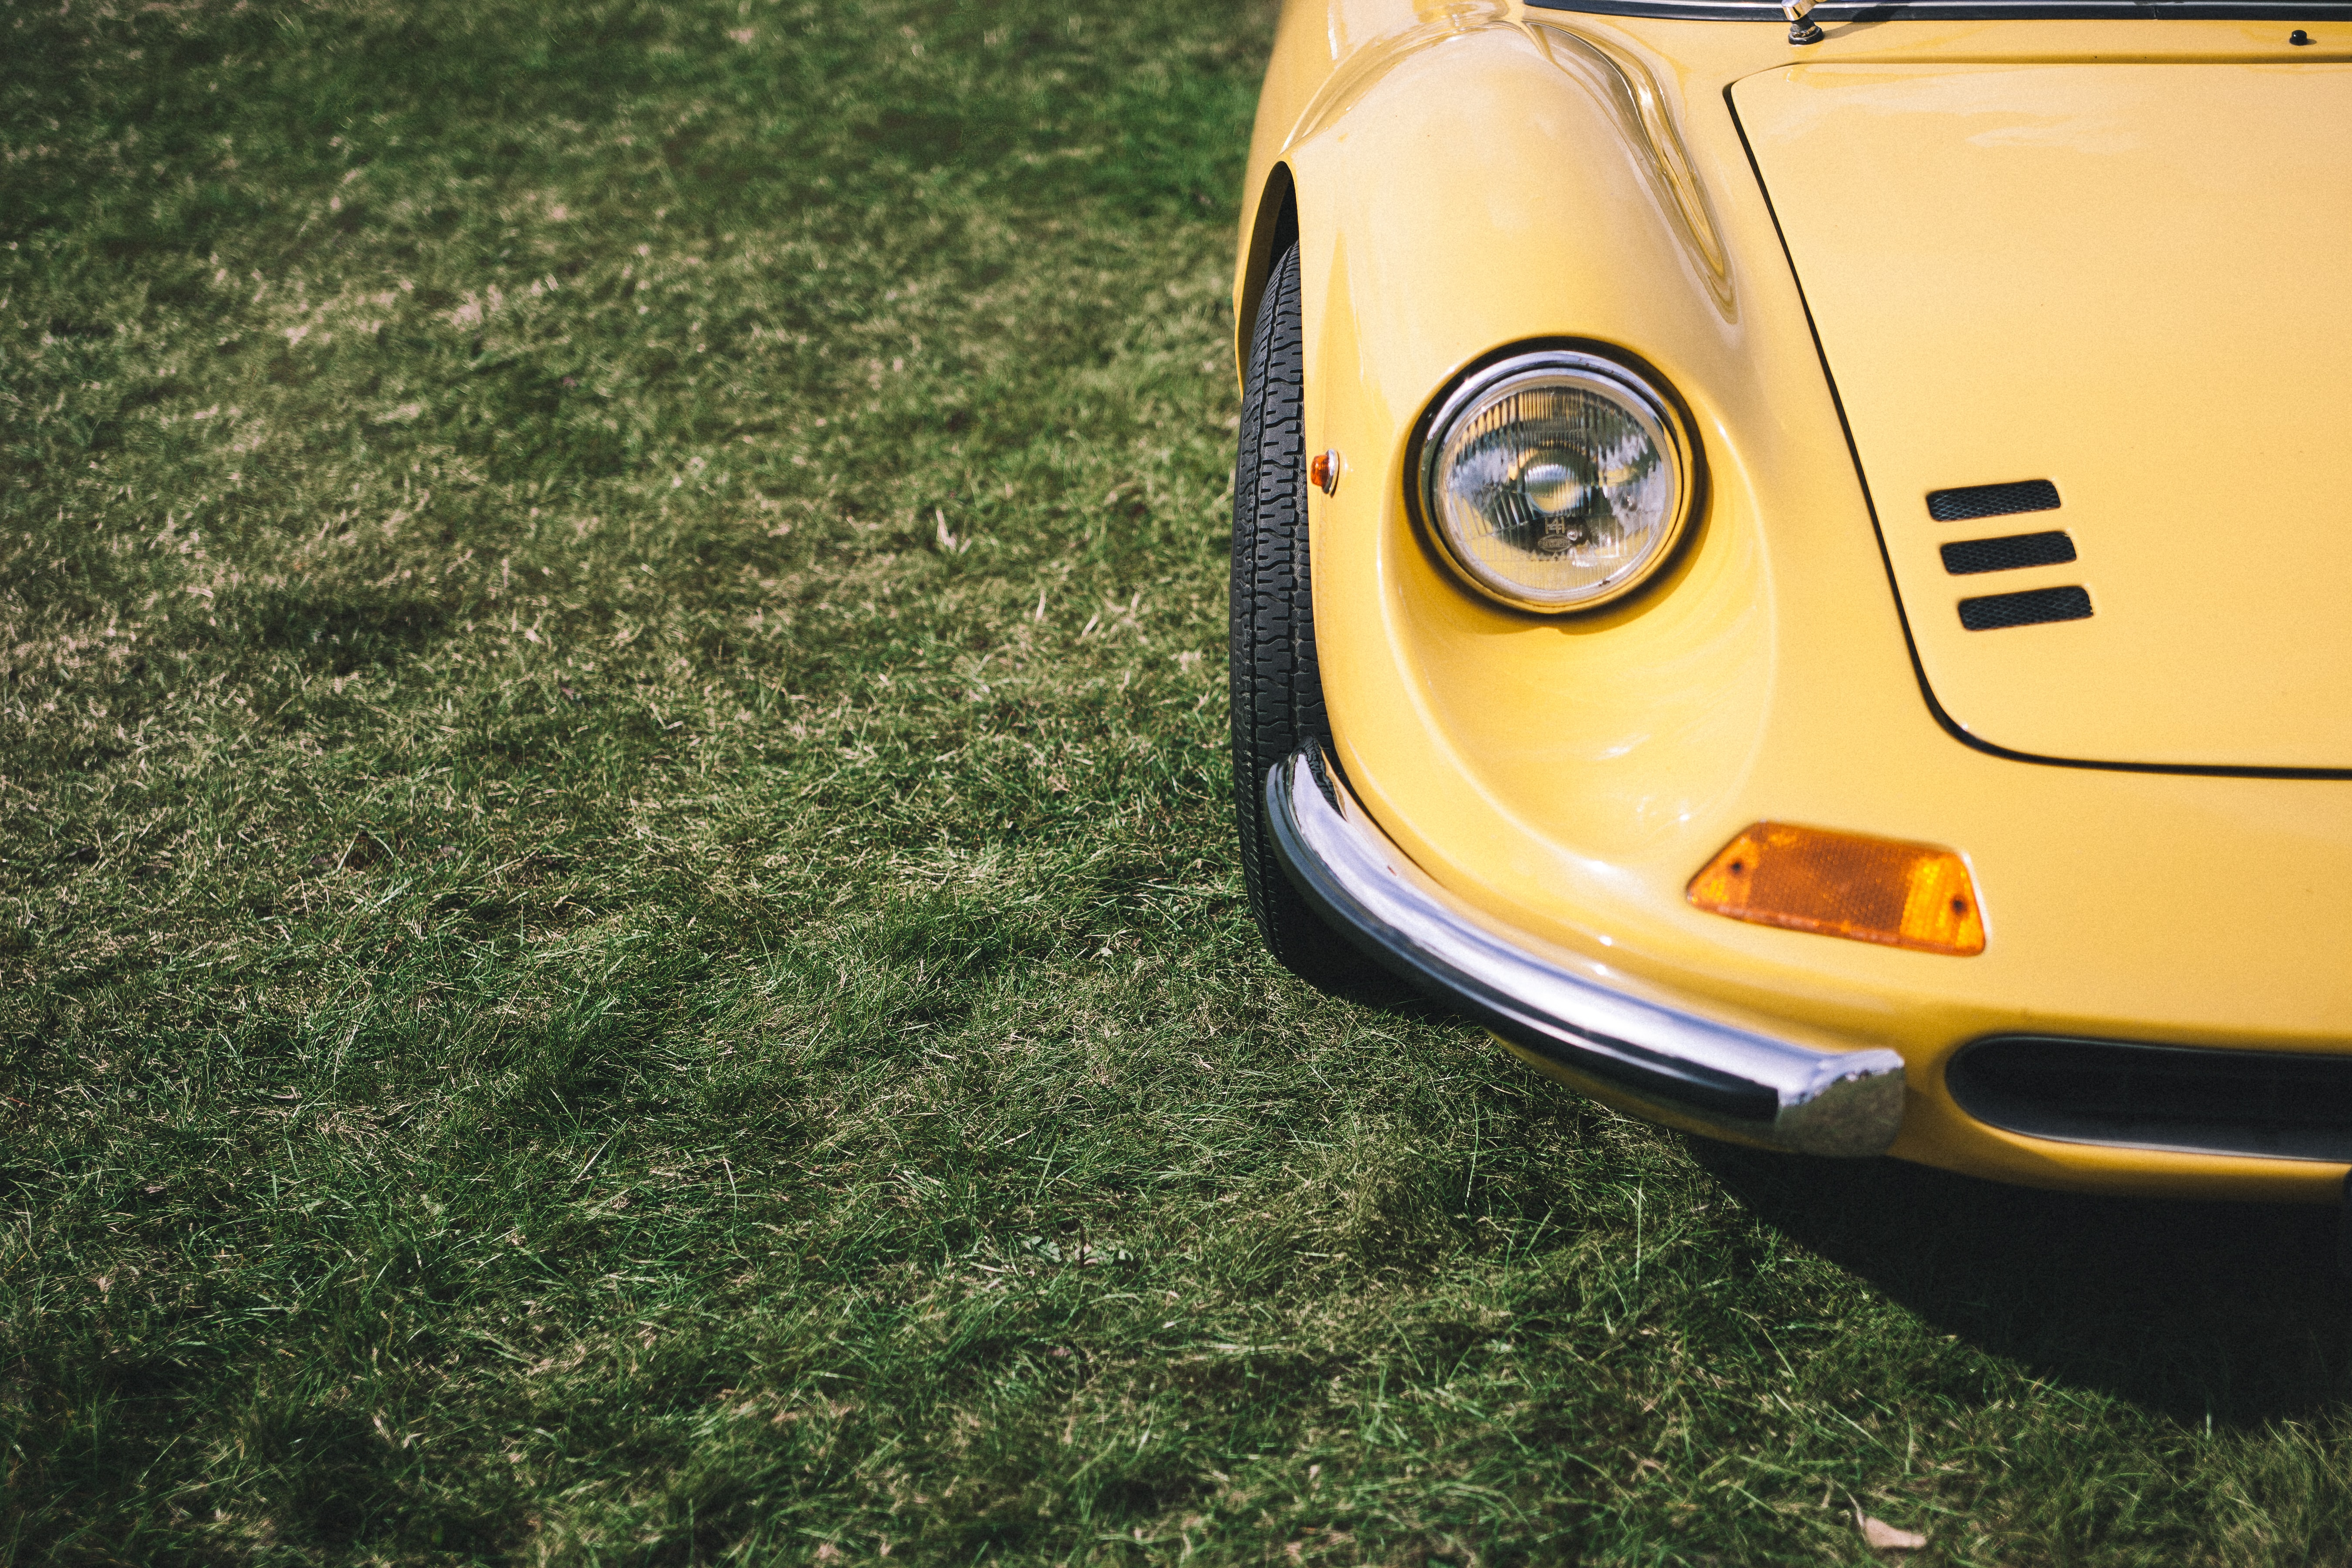 A shot of the front of a classic yellow car parked next to the grass.